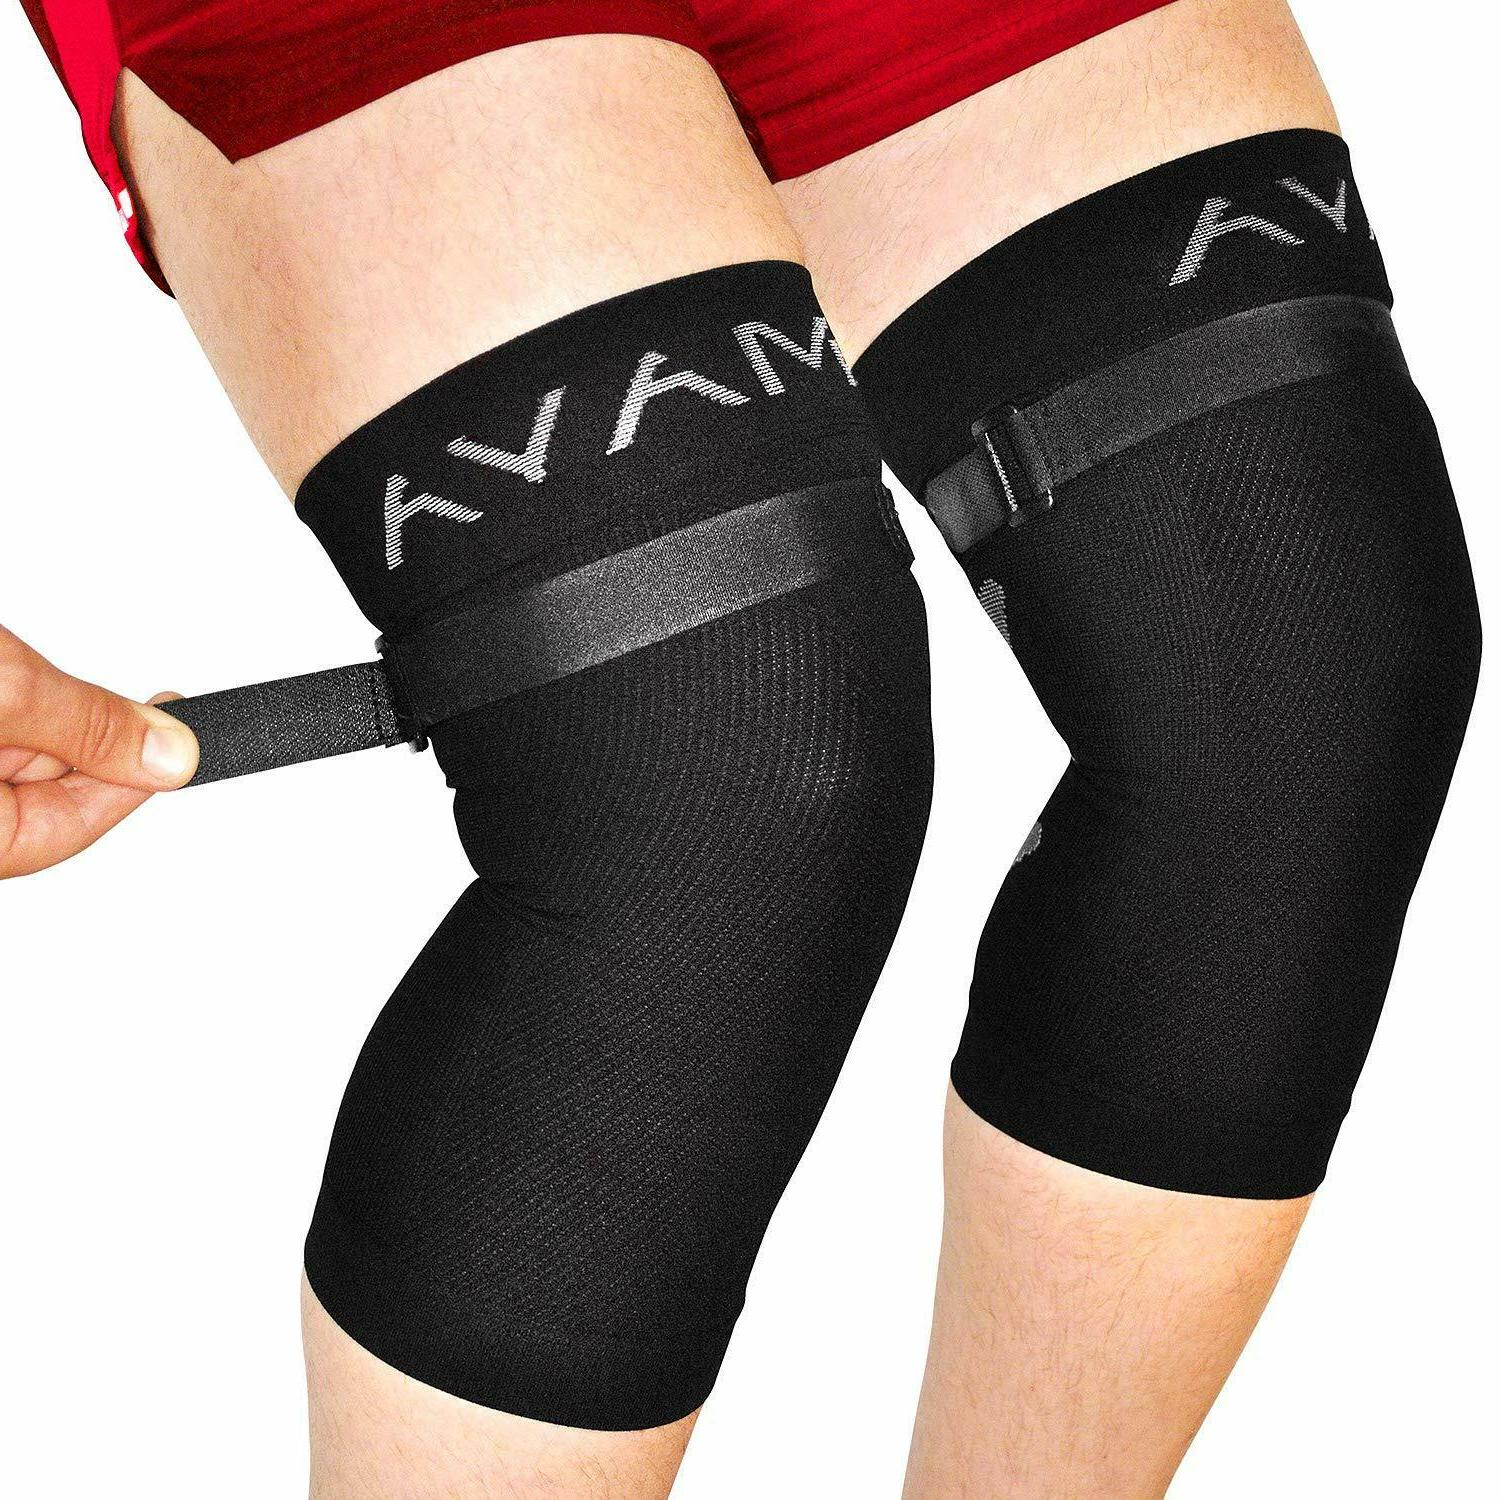 sports knee brace pair with adjustable strap